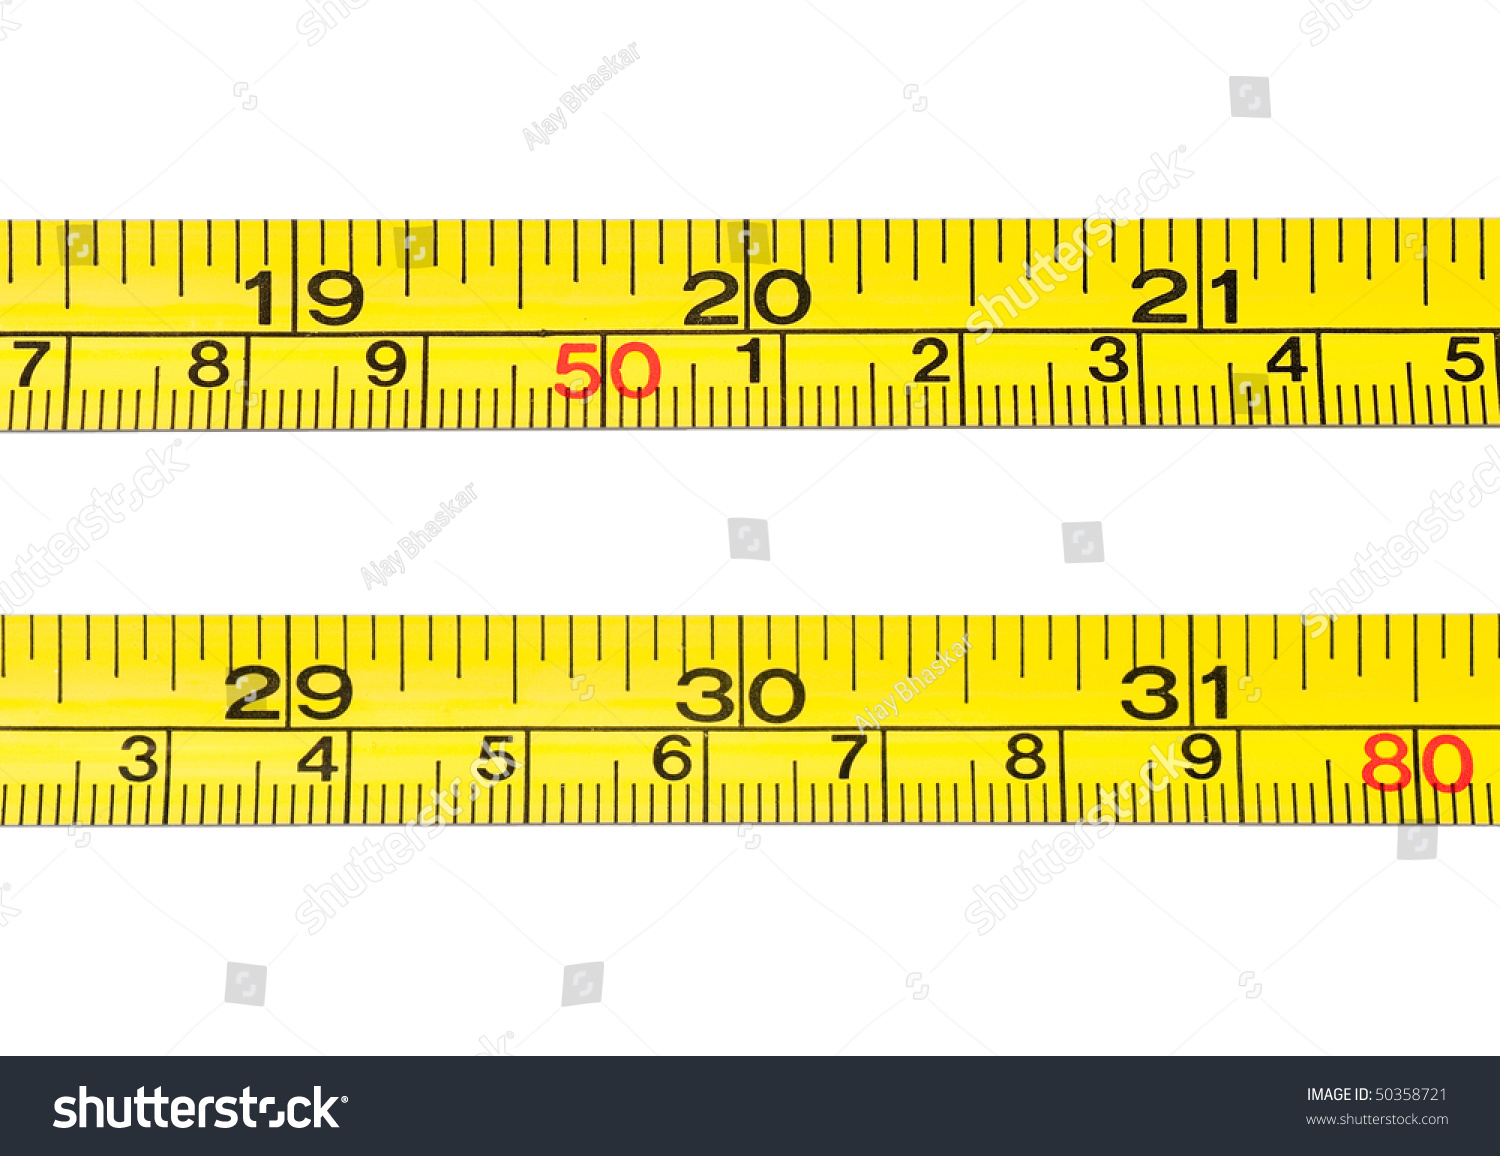 teach how to read a tape measure